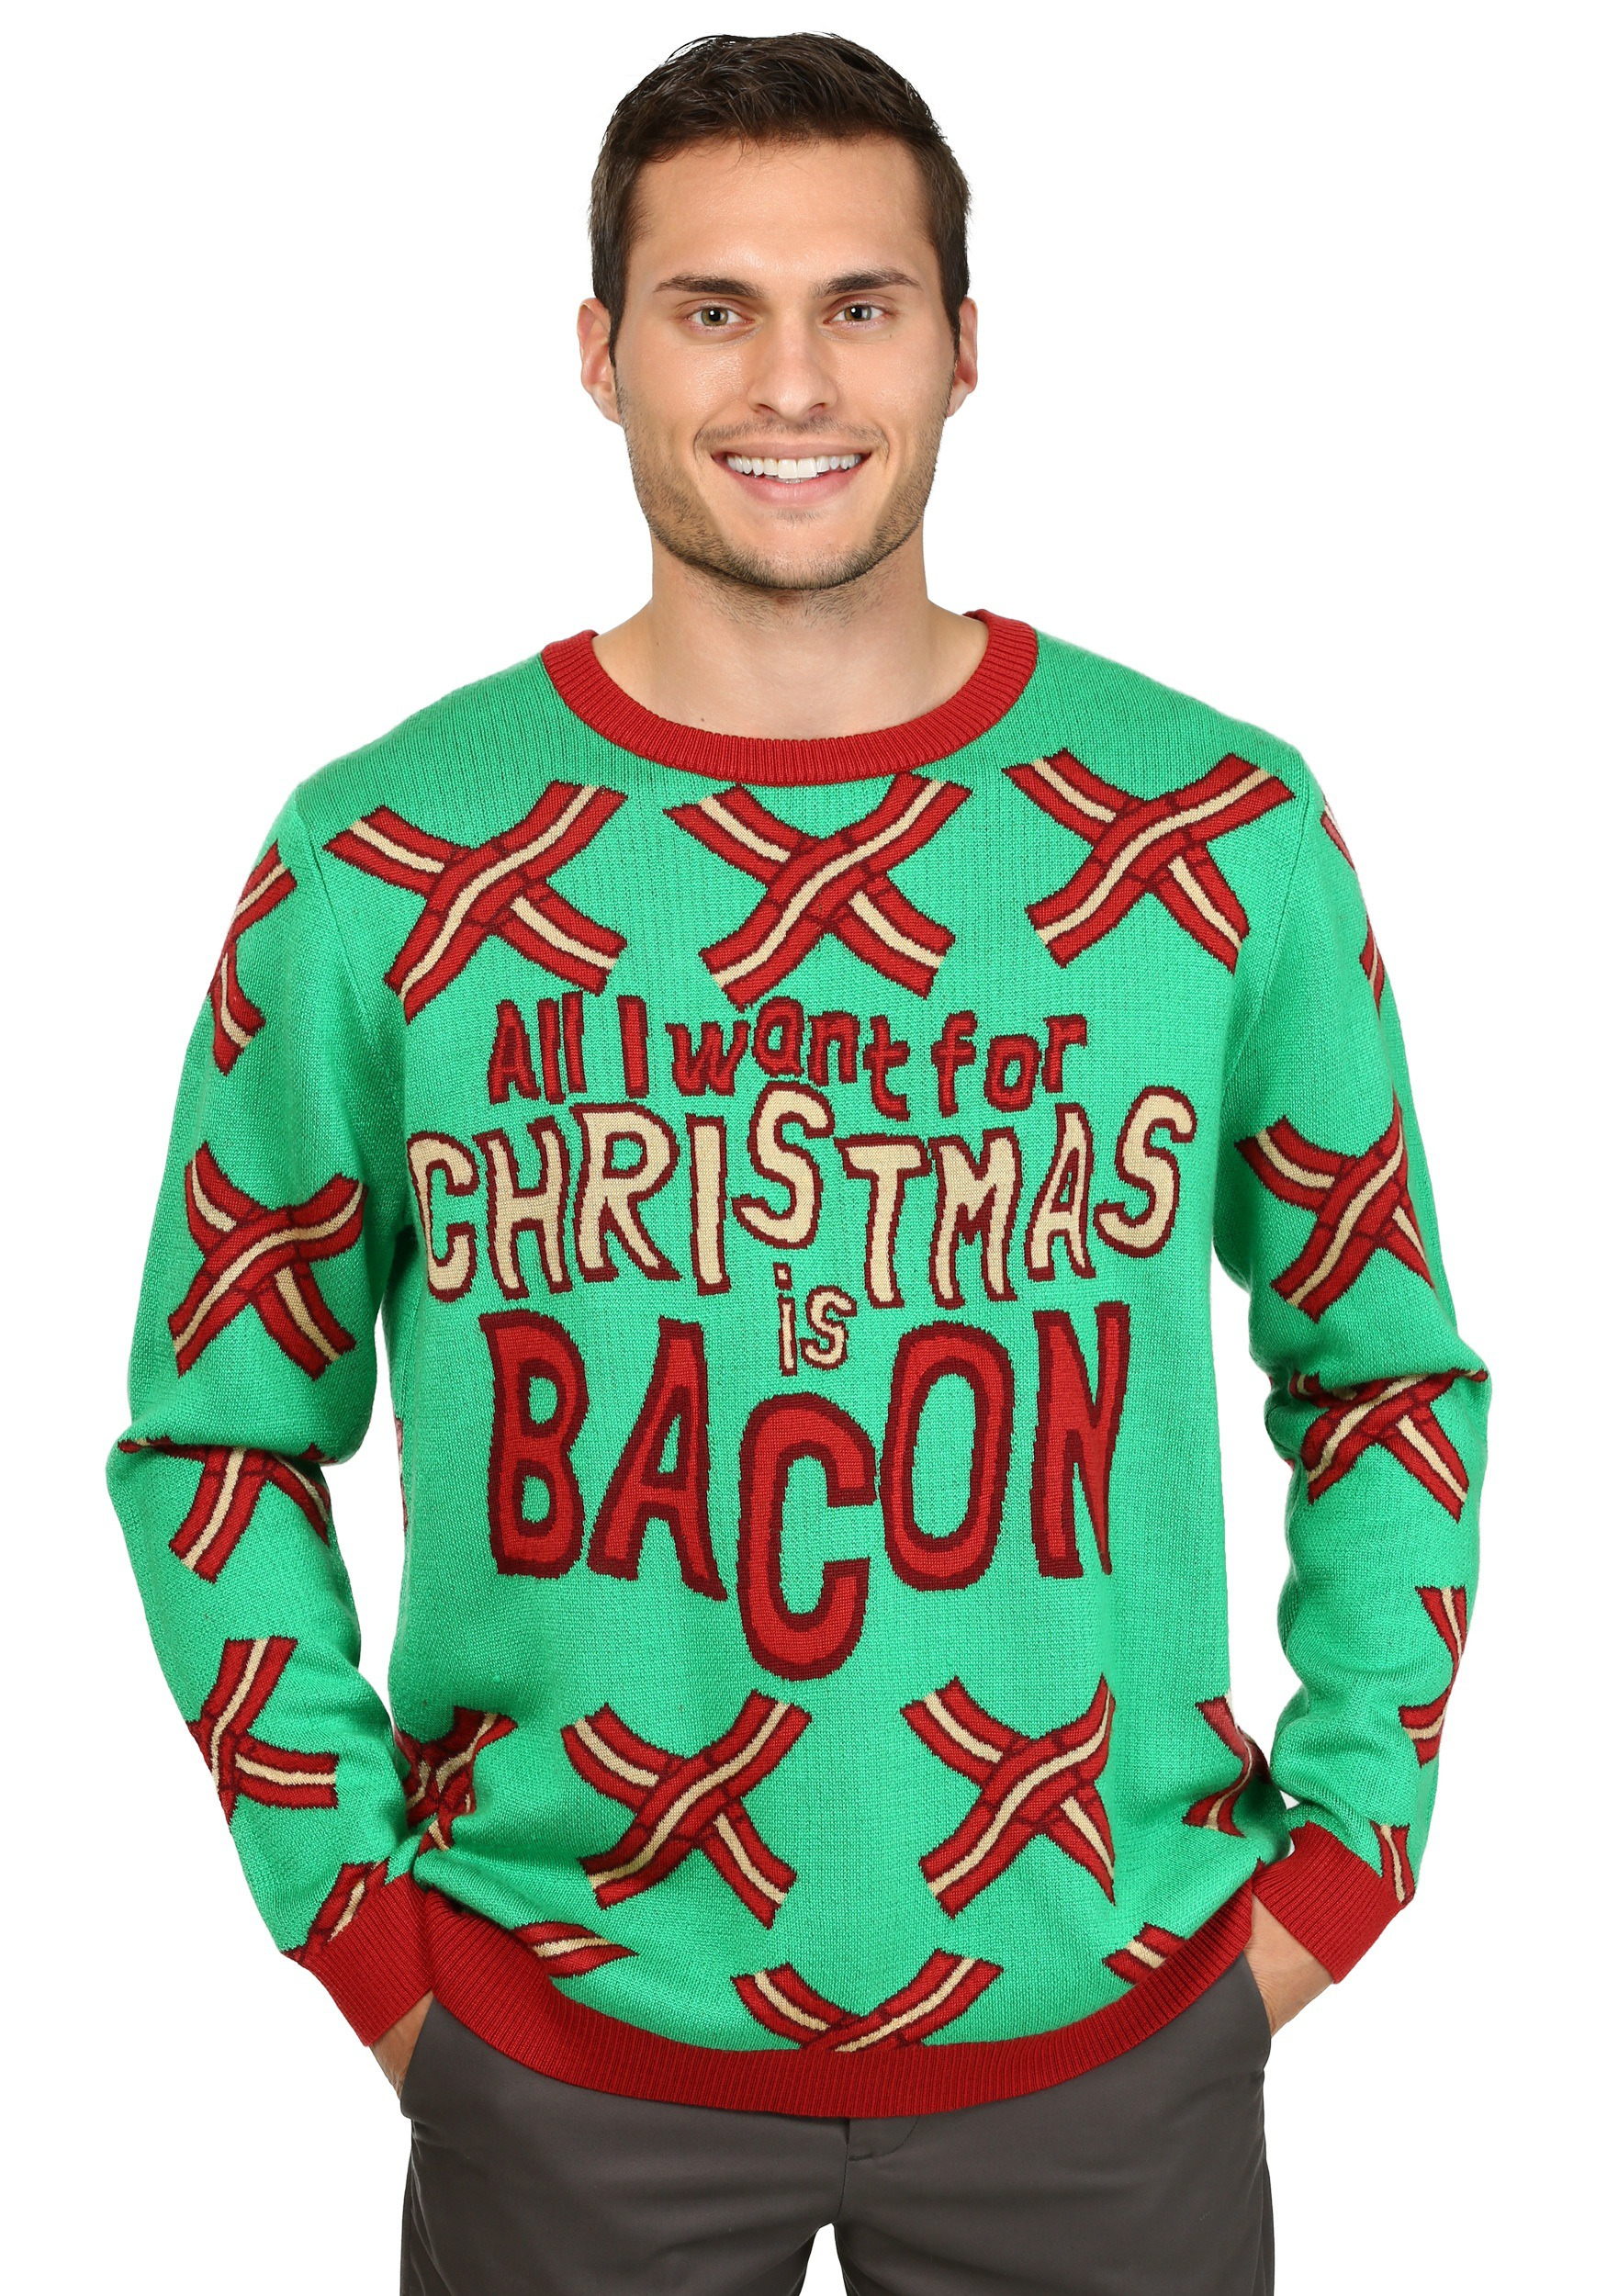 Funny Christmas Sweater.All I Want For Christmas Is Bacon Ugly Christmas Sweater